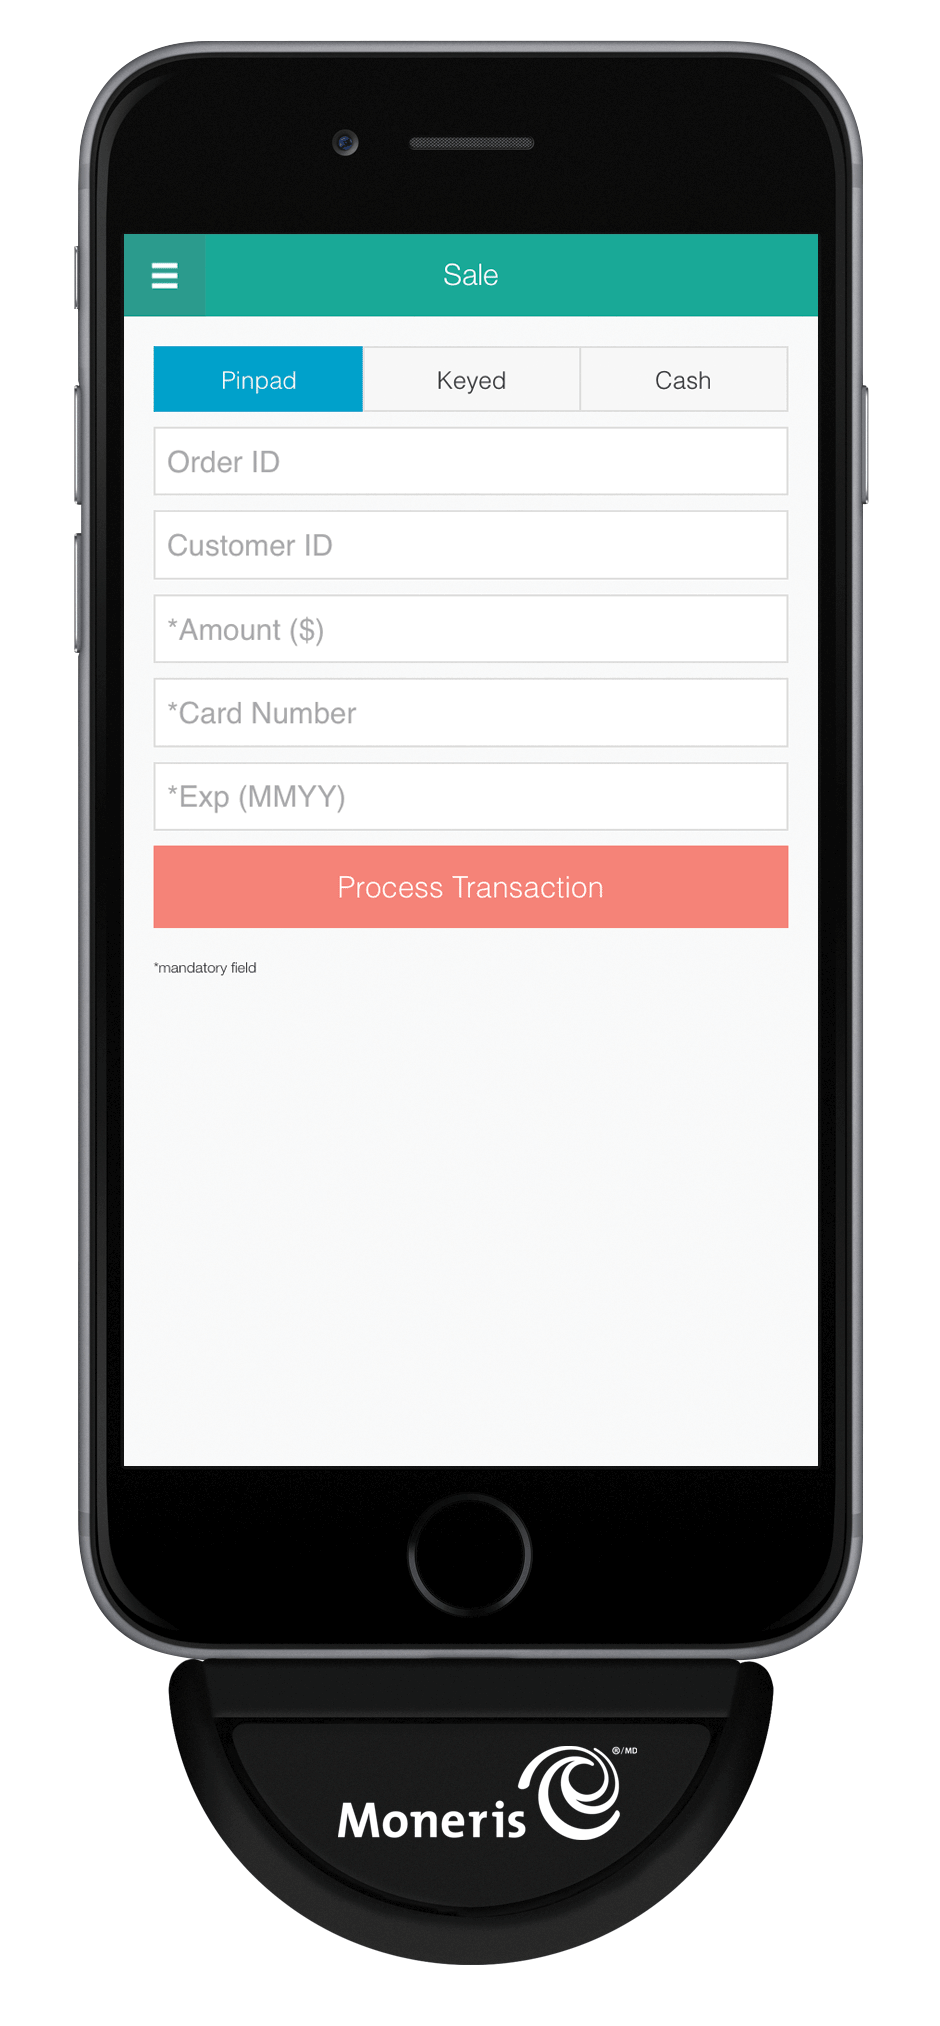 sbi credit card login mobile application